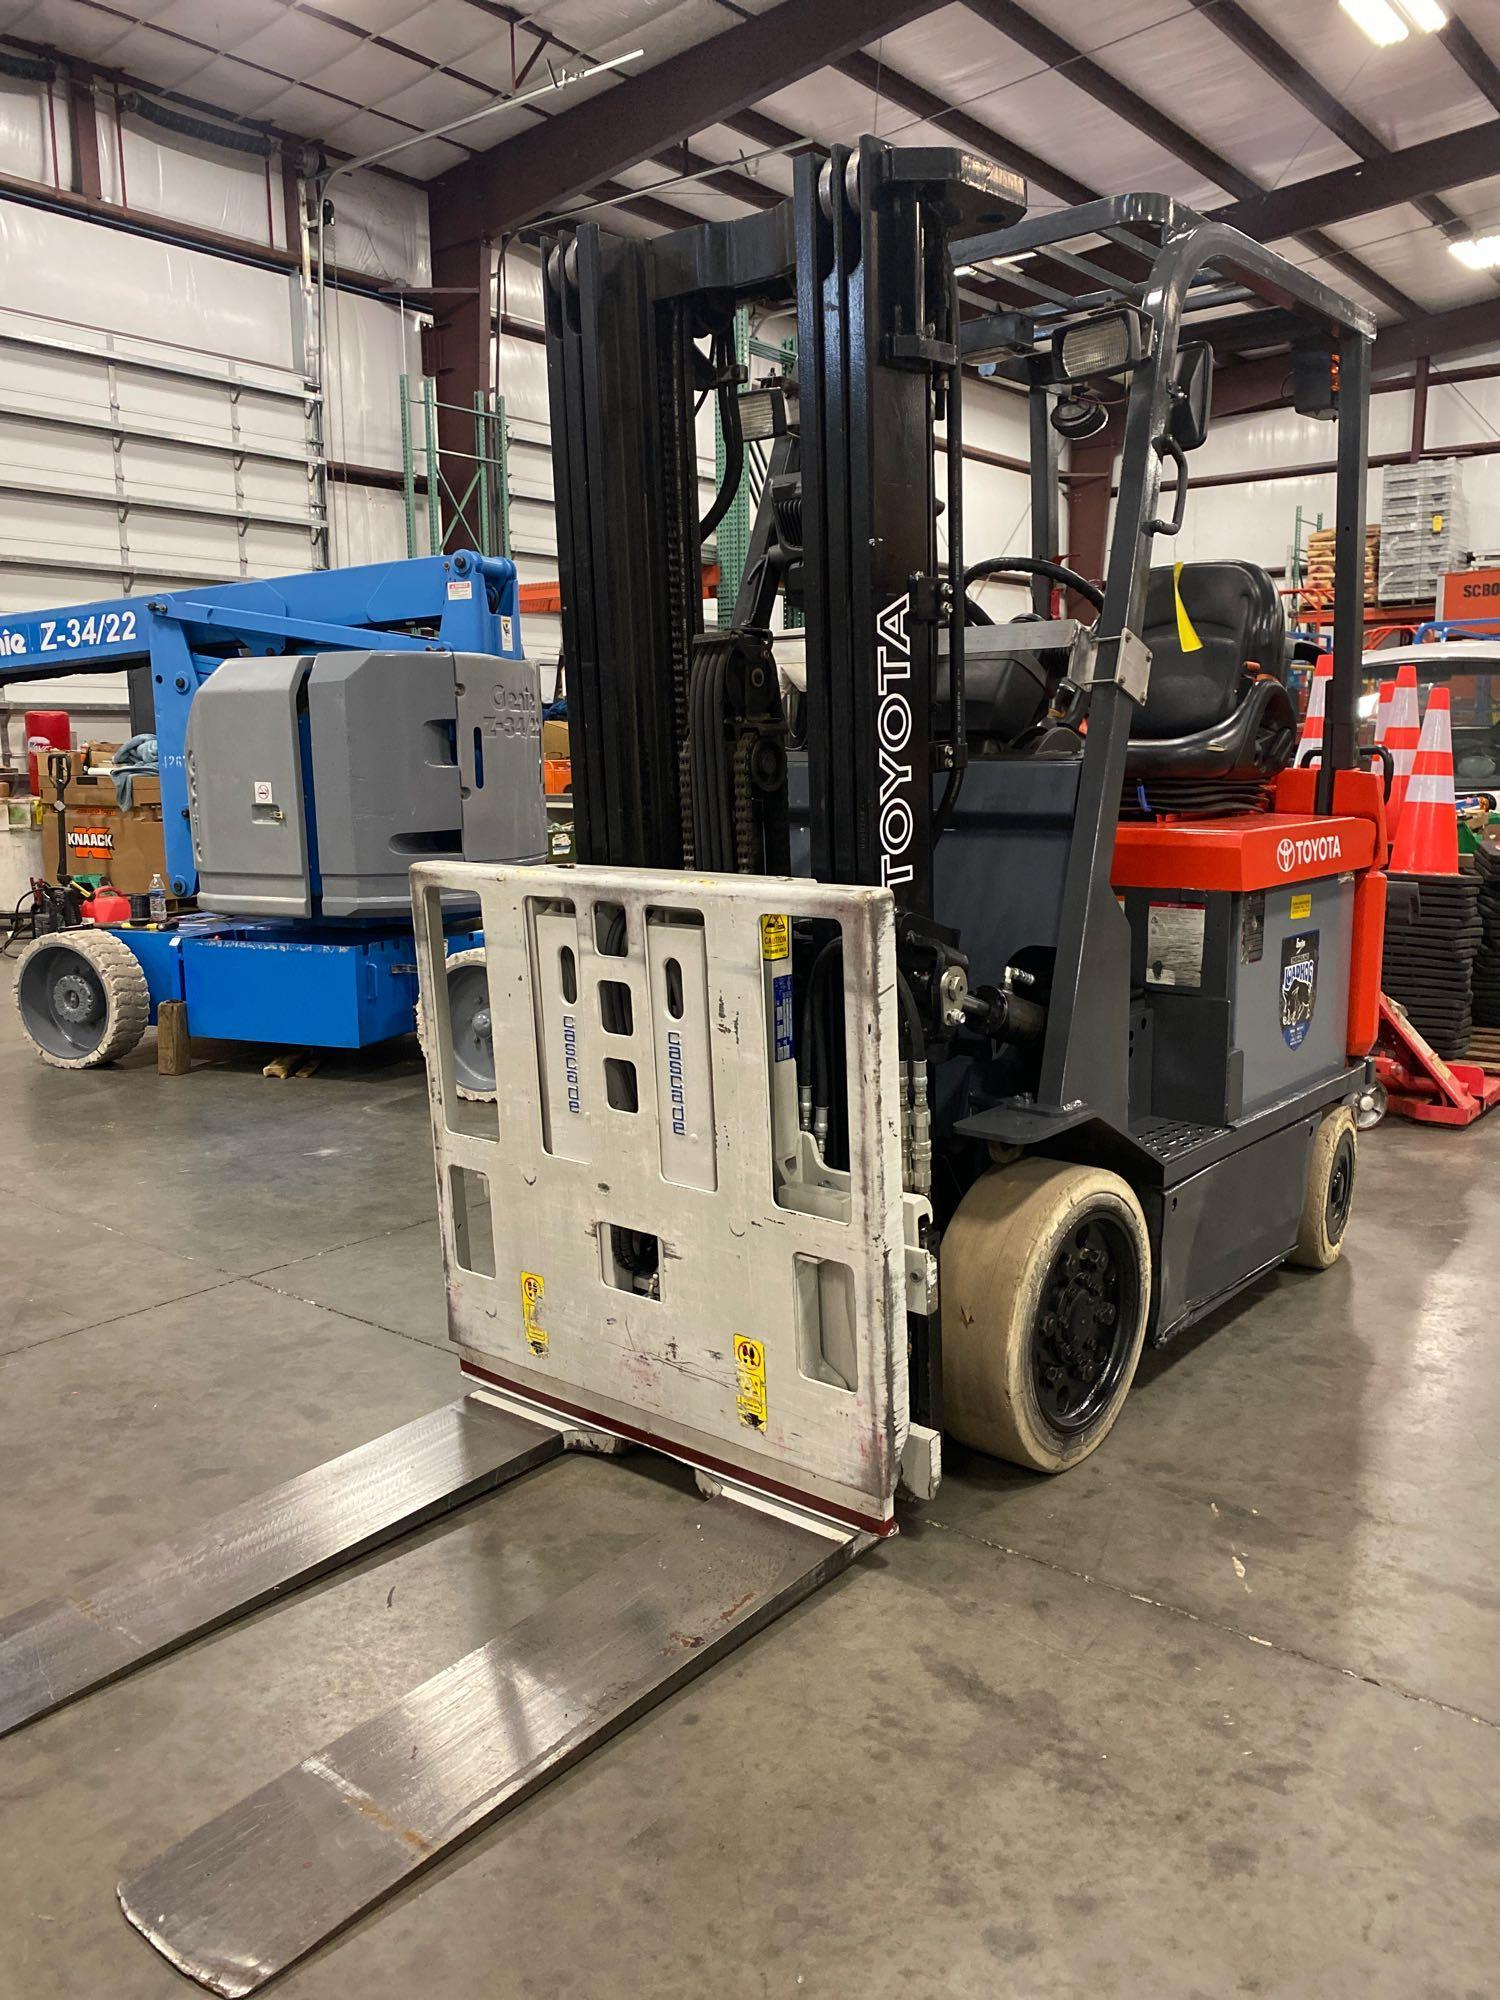 """TOYOTA ELECTRIC FORKLIFT MODEL 7FBCU25, 189"""" HEIGHT CAPACITY, TILT, SIDESHIFT, 36V, RUNS AND OPERATE - Image 6 of 11"""